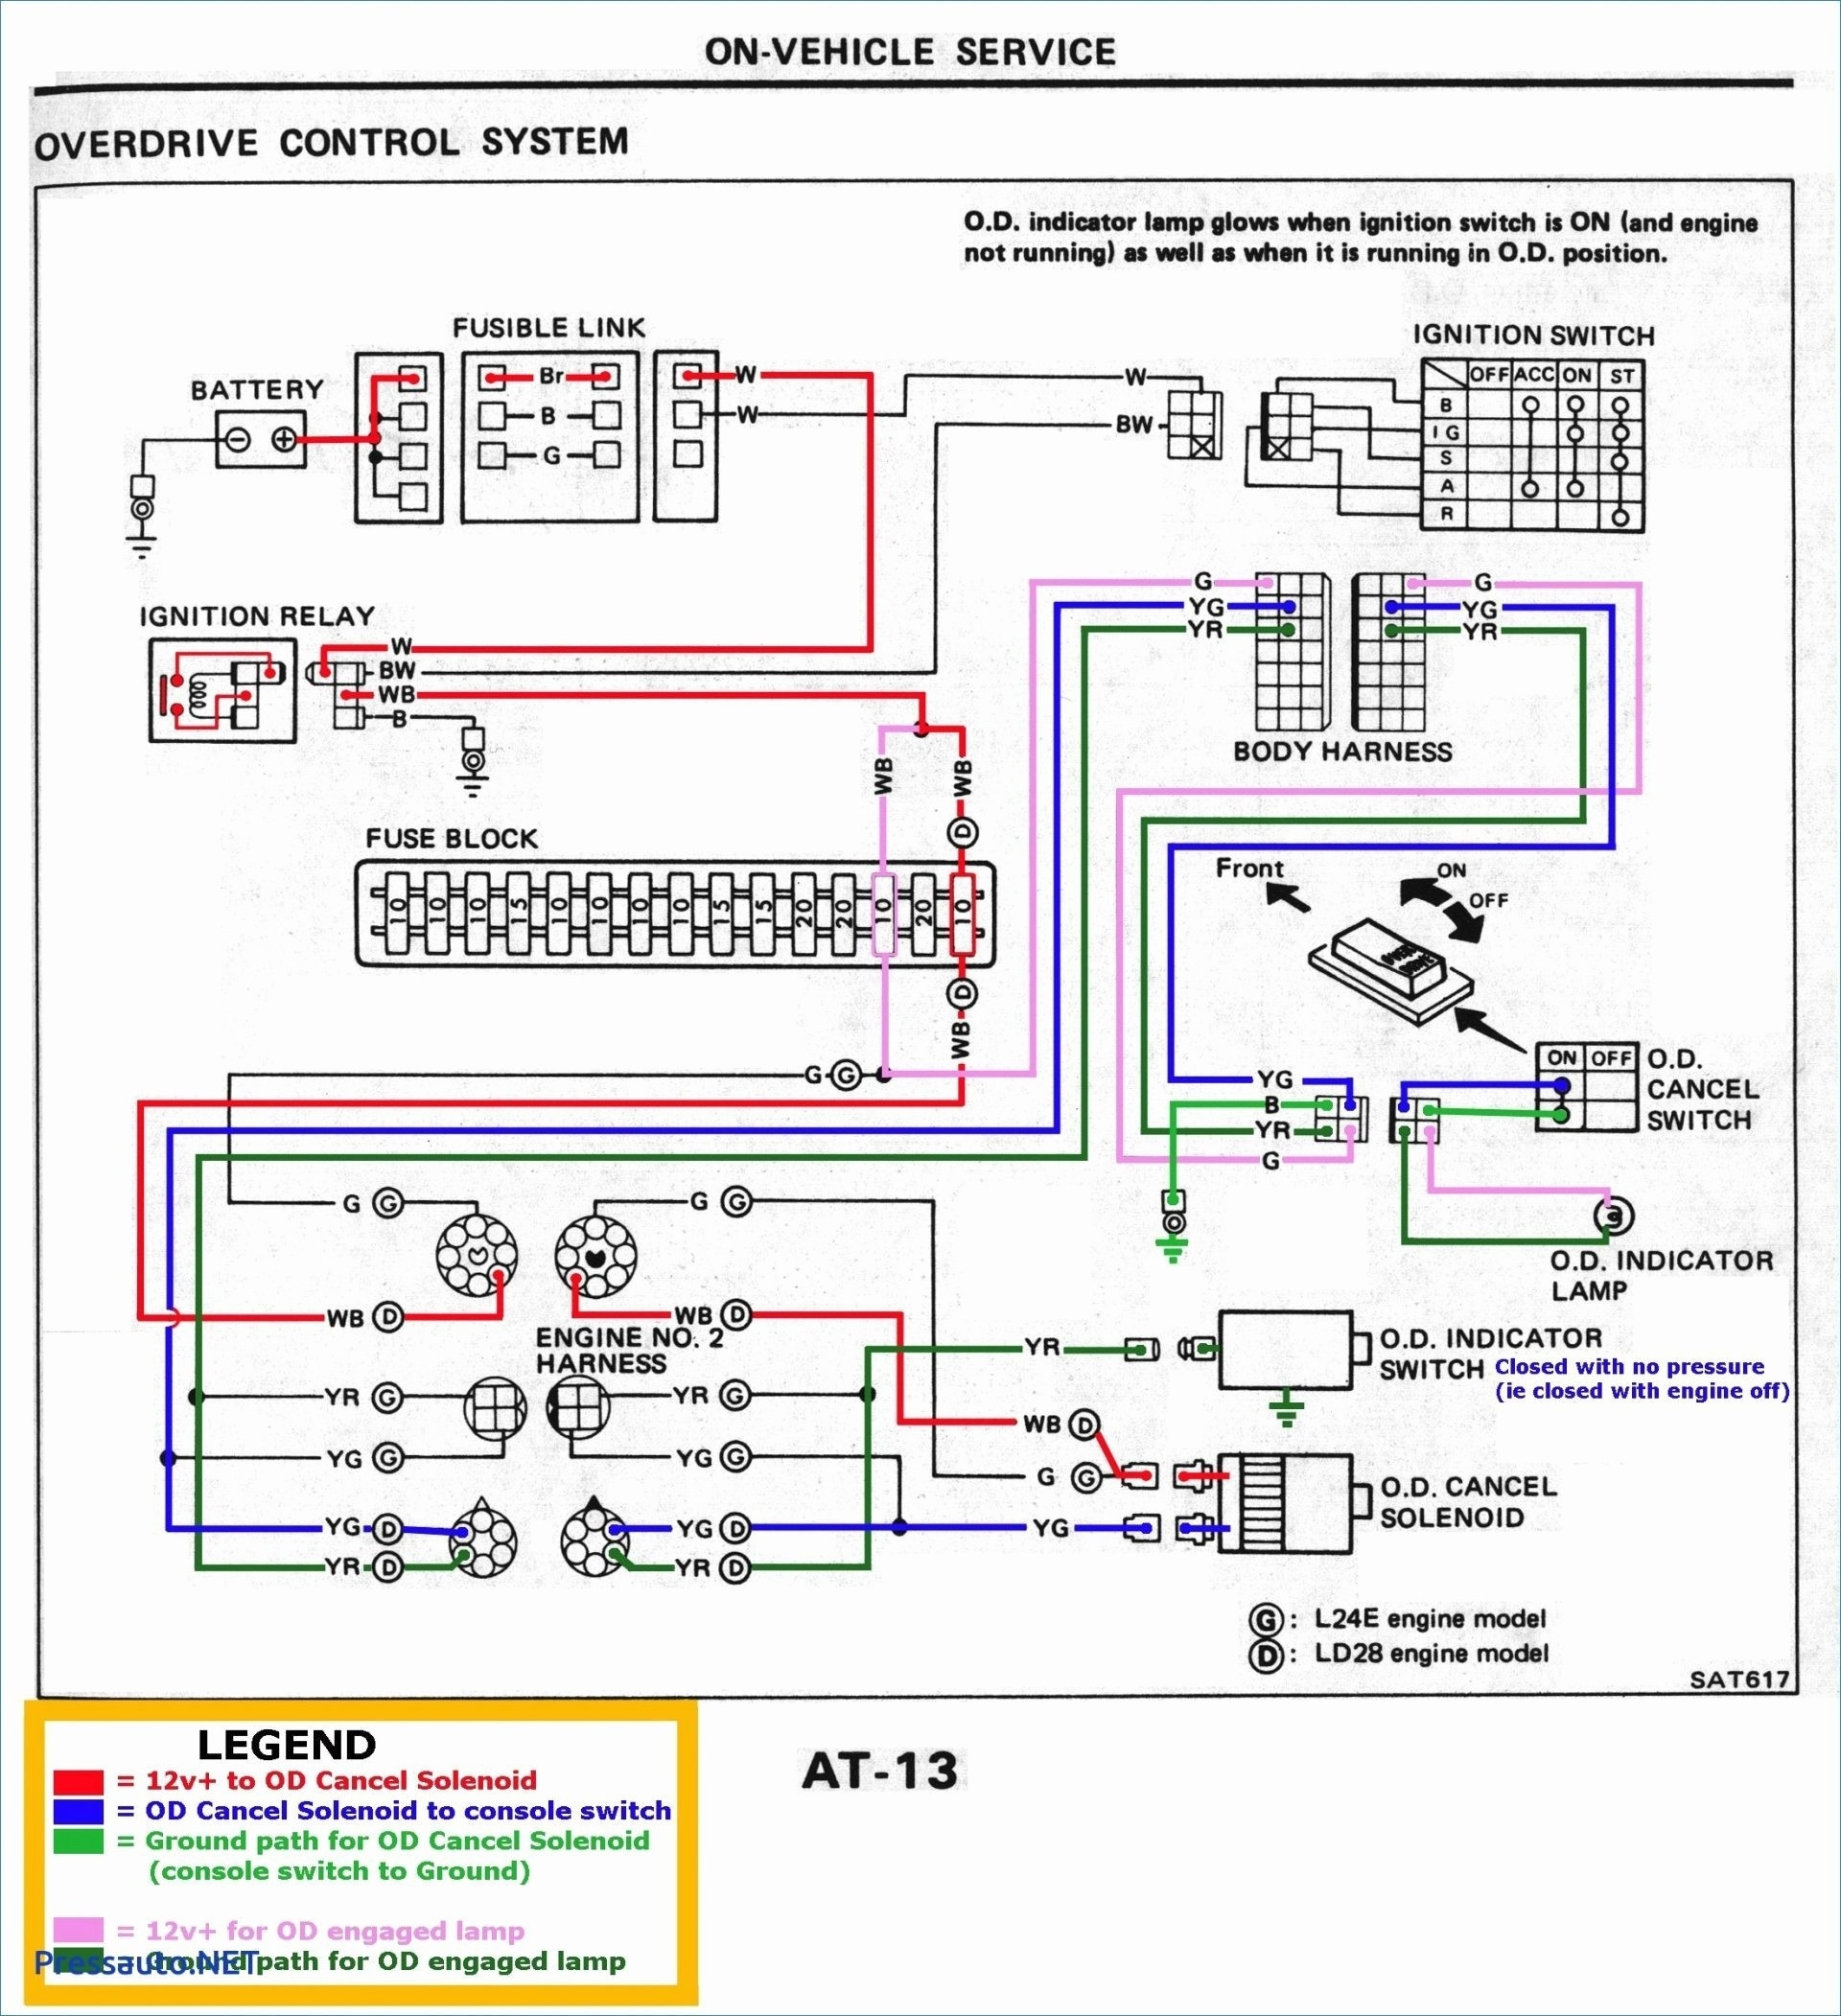 diagram besides vw alternator wiring diagram on denso alternator nippondenso alternator internal regulator wiring diagram [ 1920 x 2103 Pixel ]